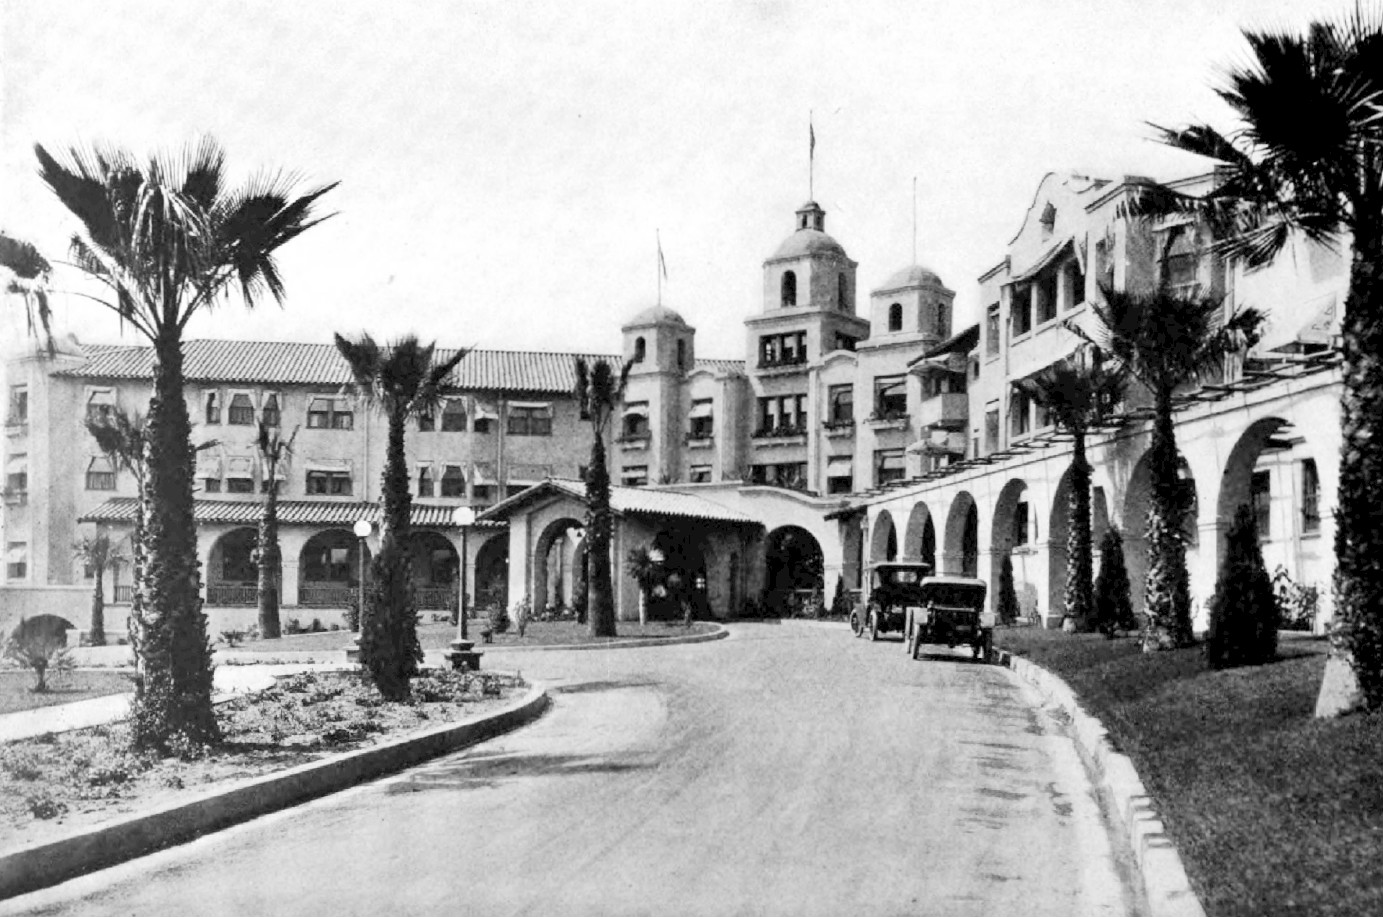 The Beverly Hills Hotel as it looked one year after it opened in 1912